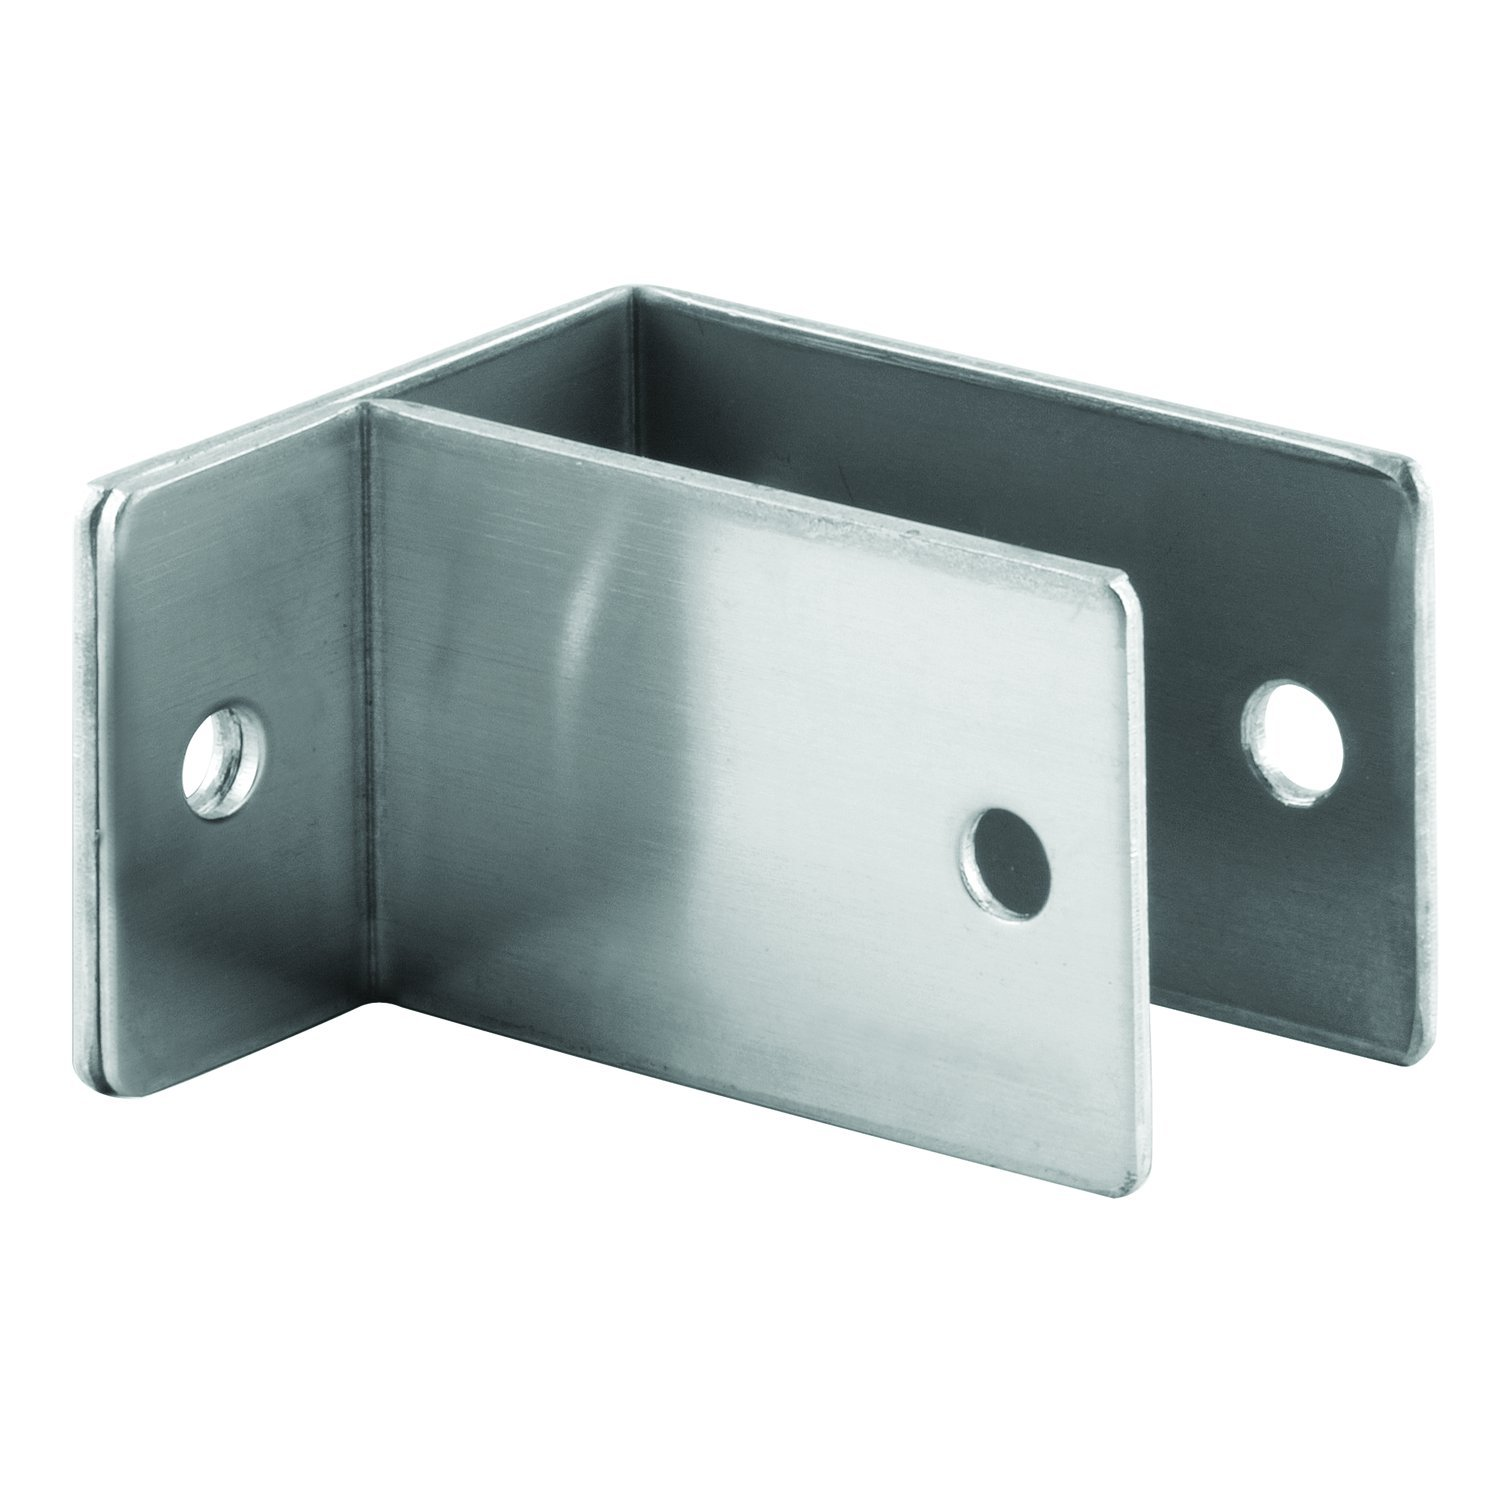 Sentry Supply 656-8160 One Ear Wall Bracket Satin Finish Pack of 1 For 1-1//4 In Thick Panels Stamped Stainless Steel Construction